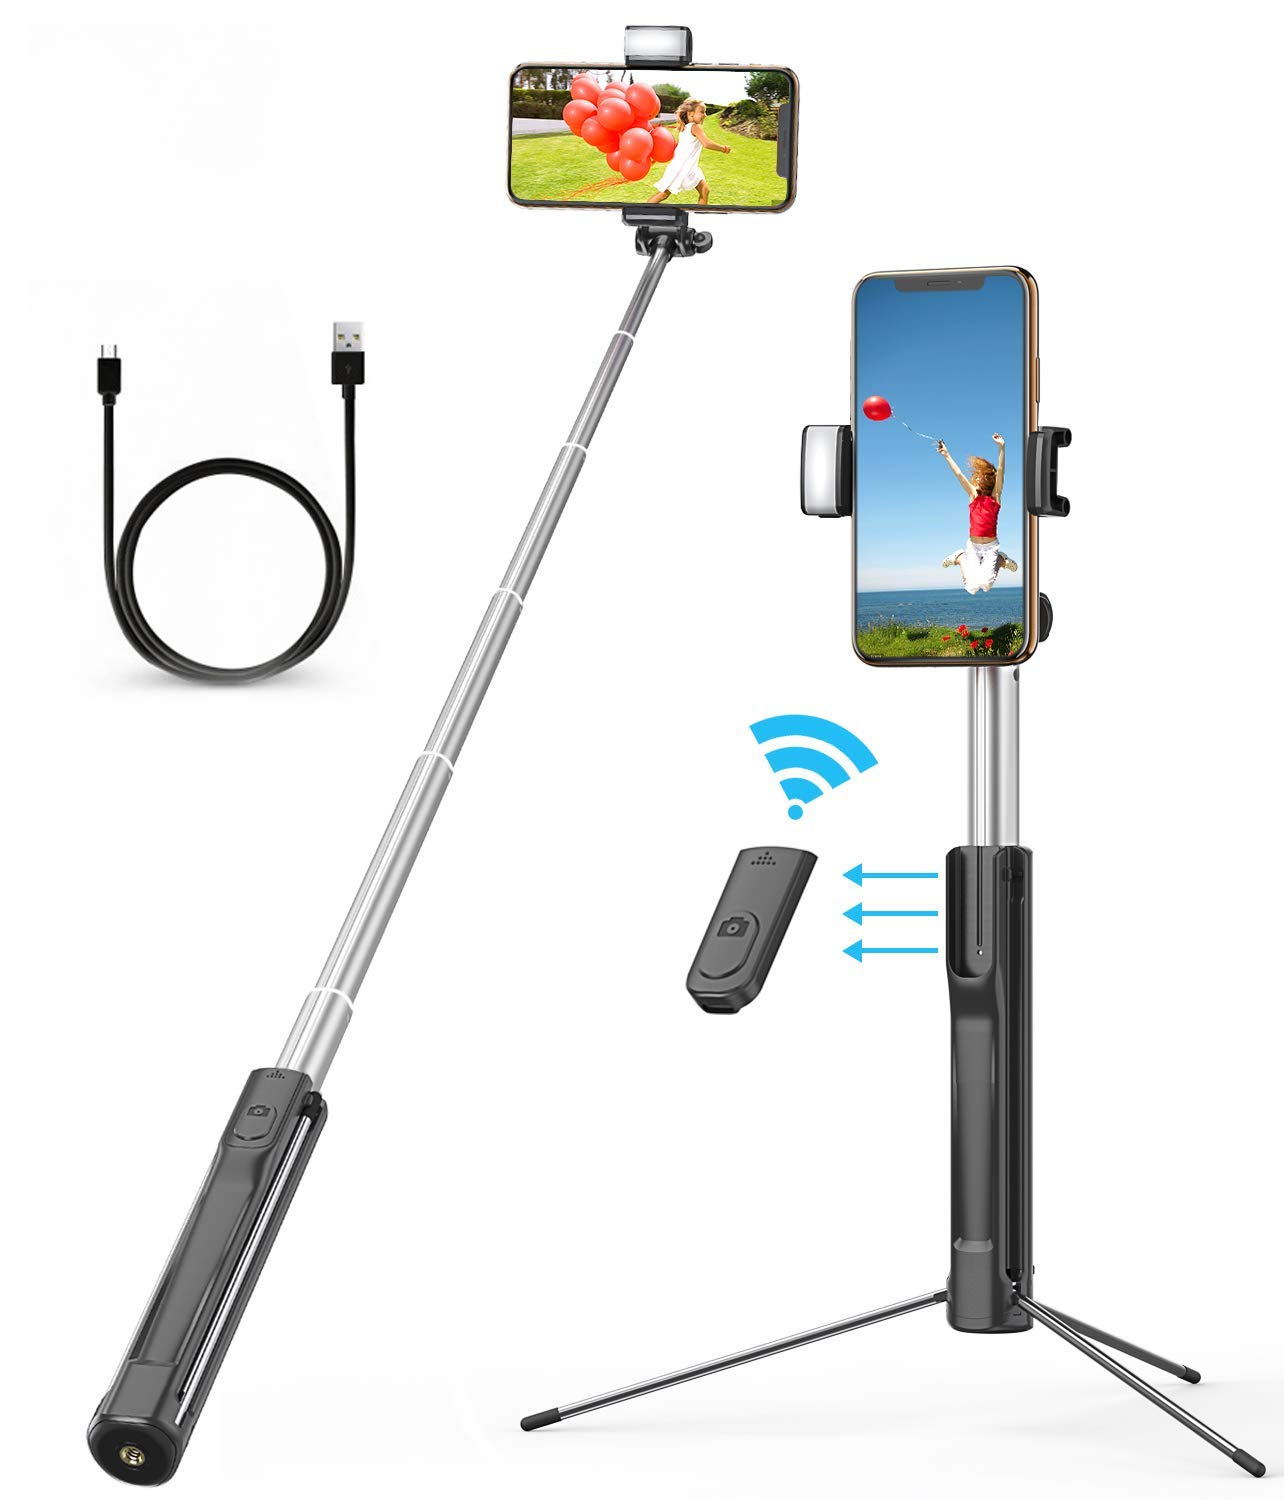 Selfie Stick, VPROOF 45 Inch Extendable Rechargeable 3 Levels Fill Light Bluetooth Selfie Stick Phone Tripod with Detachable Remote for iPhone Xs Max/XR/X/8 Plus, Galaxy S10 Plus/Note 9 (Black) by Vproof